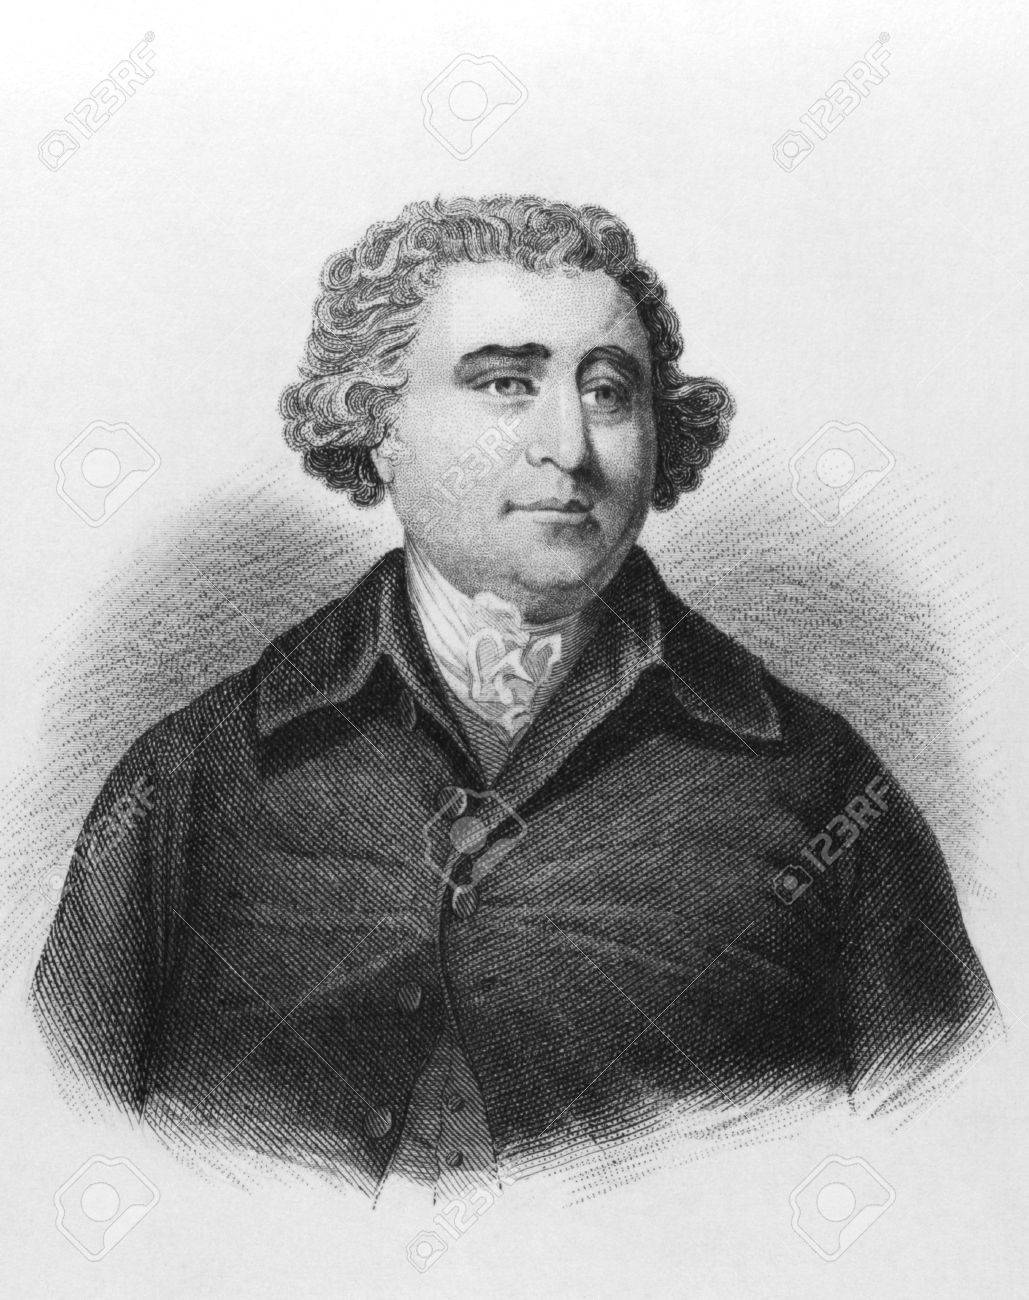 Charles James Fox on engraving from the 1800s. Prominent British Whig statesman. Published in London by L.Tallis. Stock Photo - 8511033